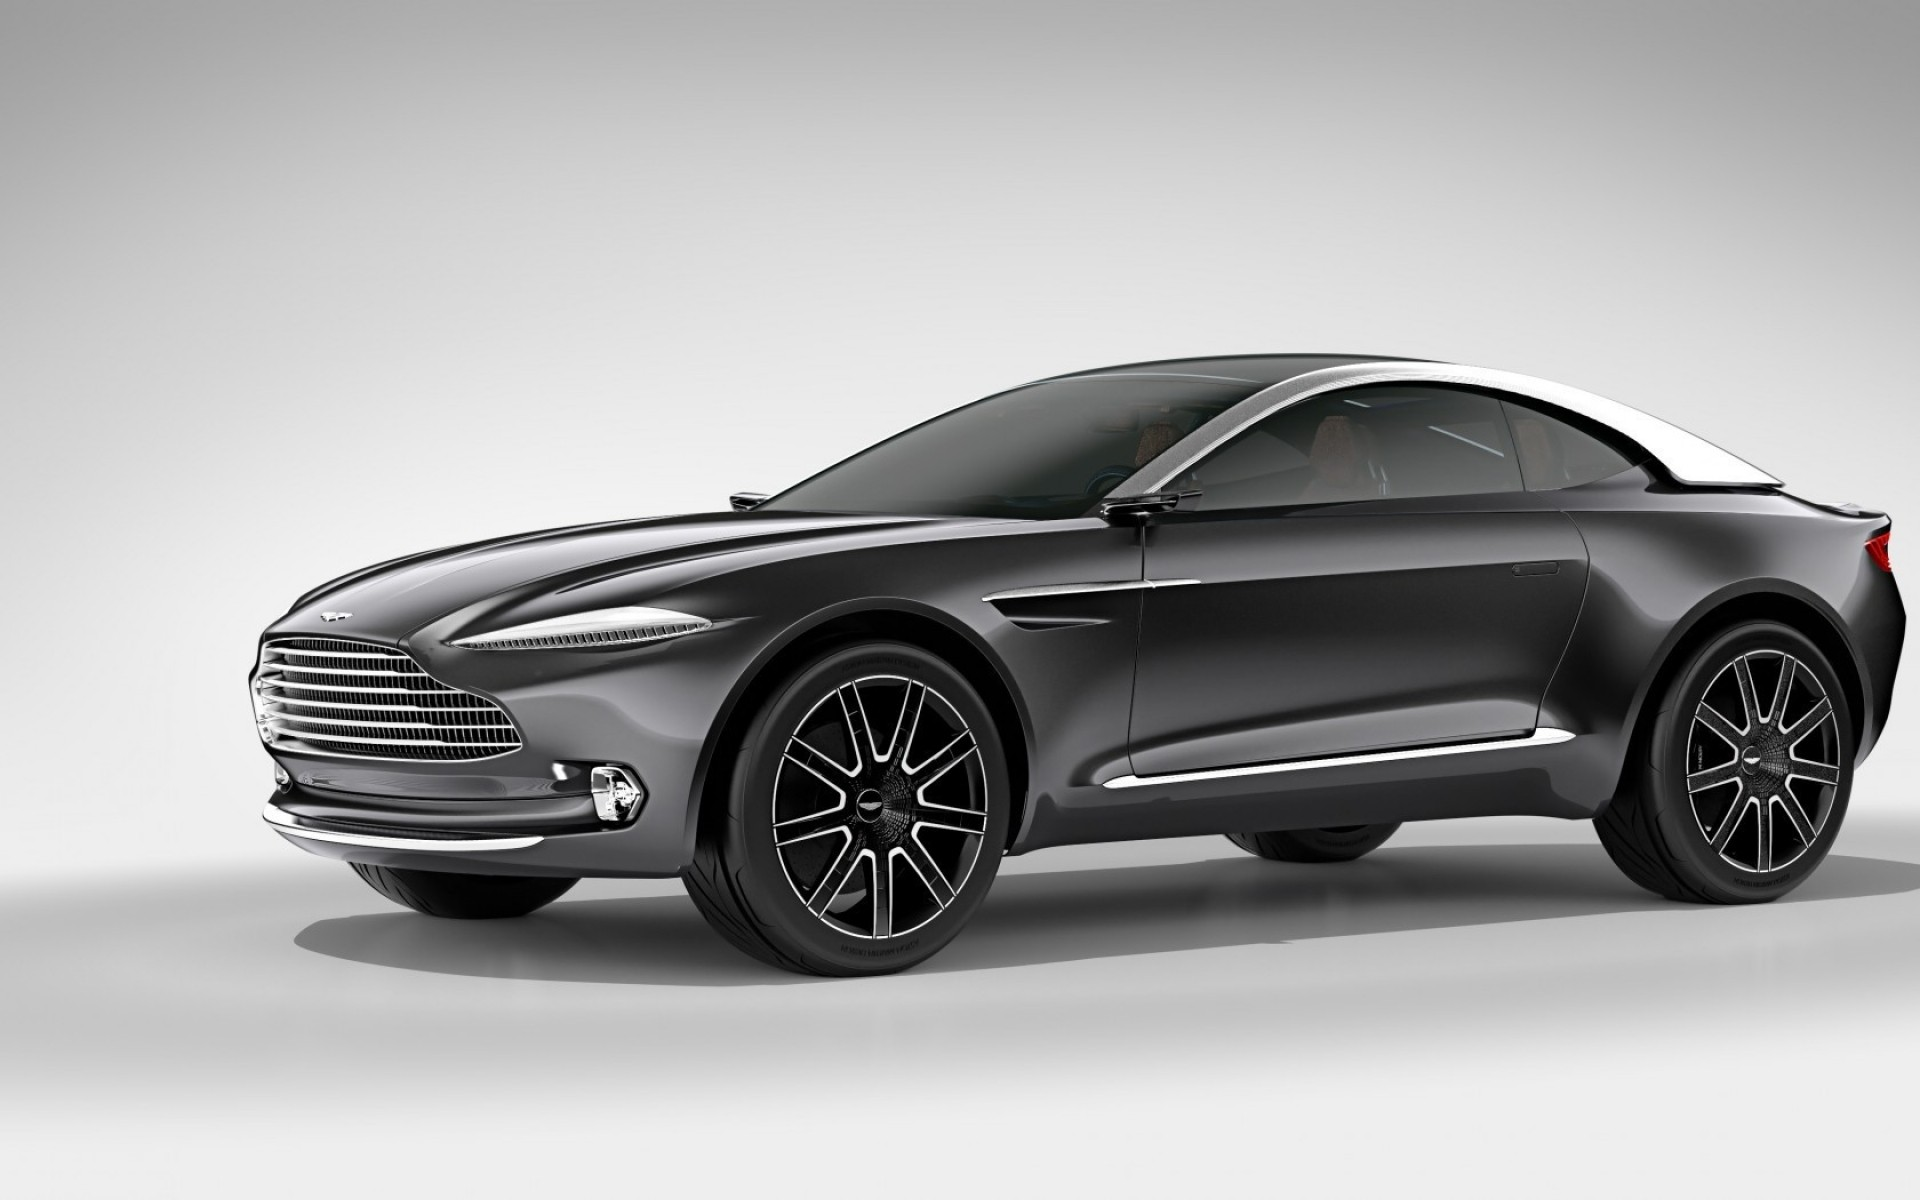 aston martin car vehicle wheel automotive coupe transportation system fast